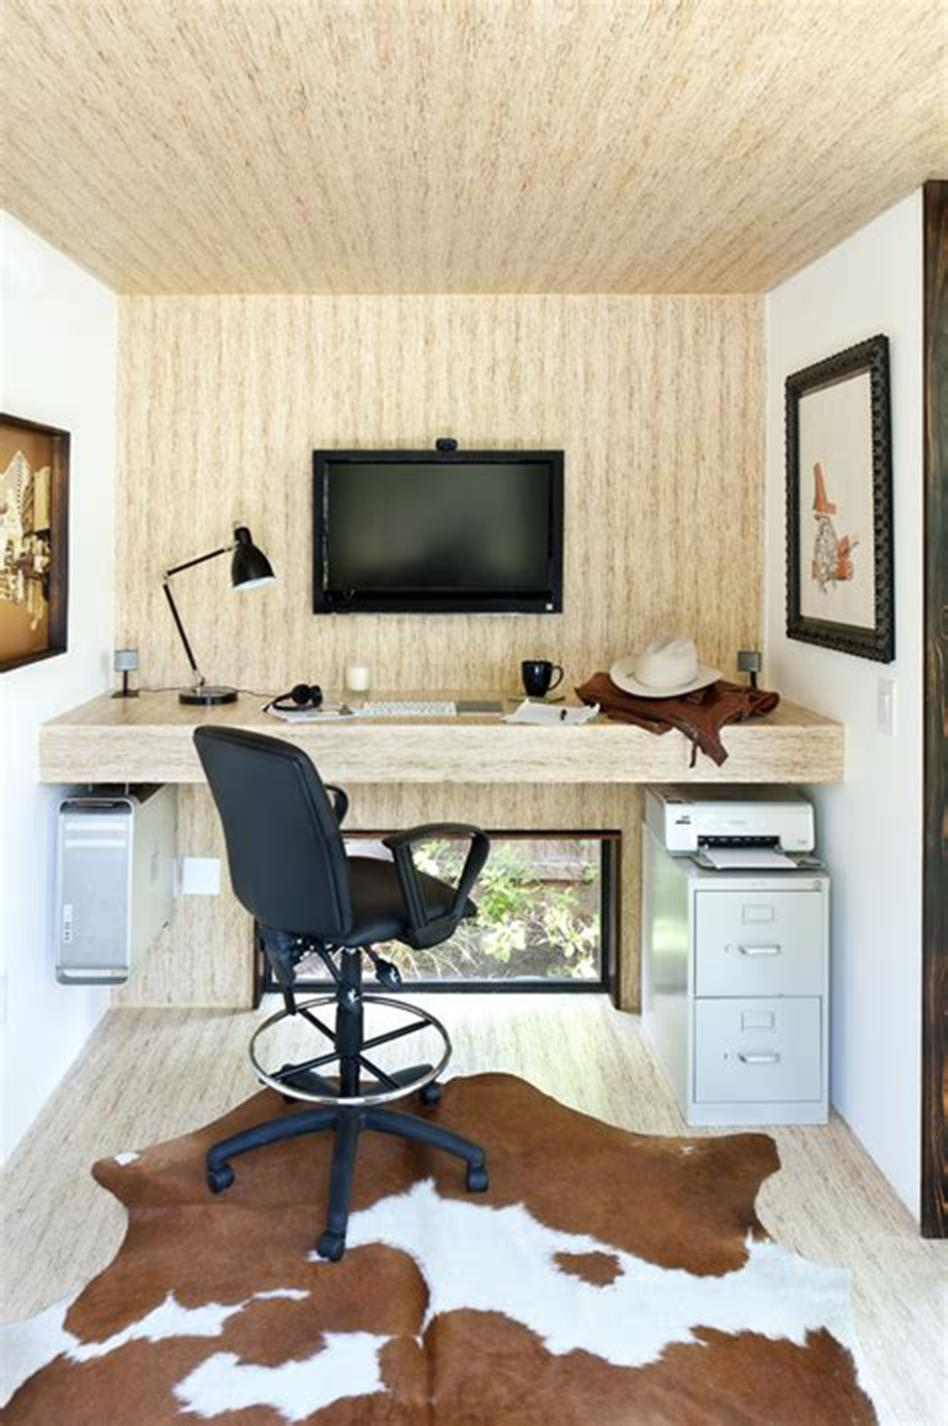 50 Best Small Space Office Decorating Ideas On a Budget 2019 62